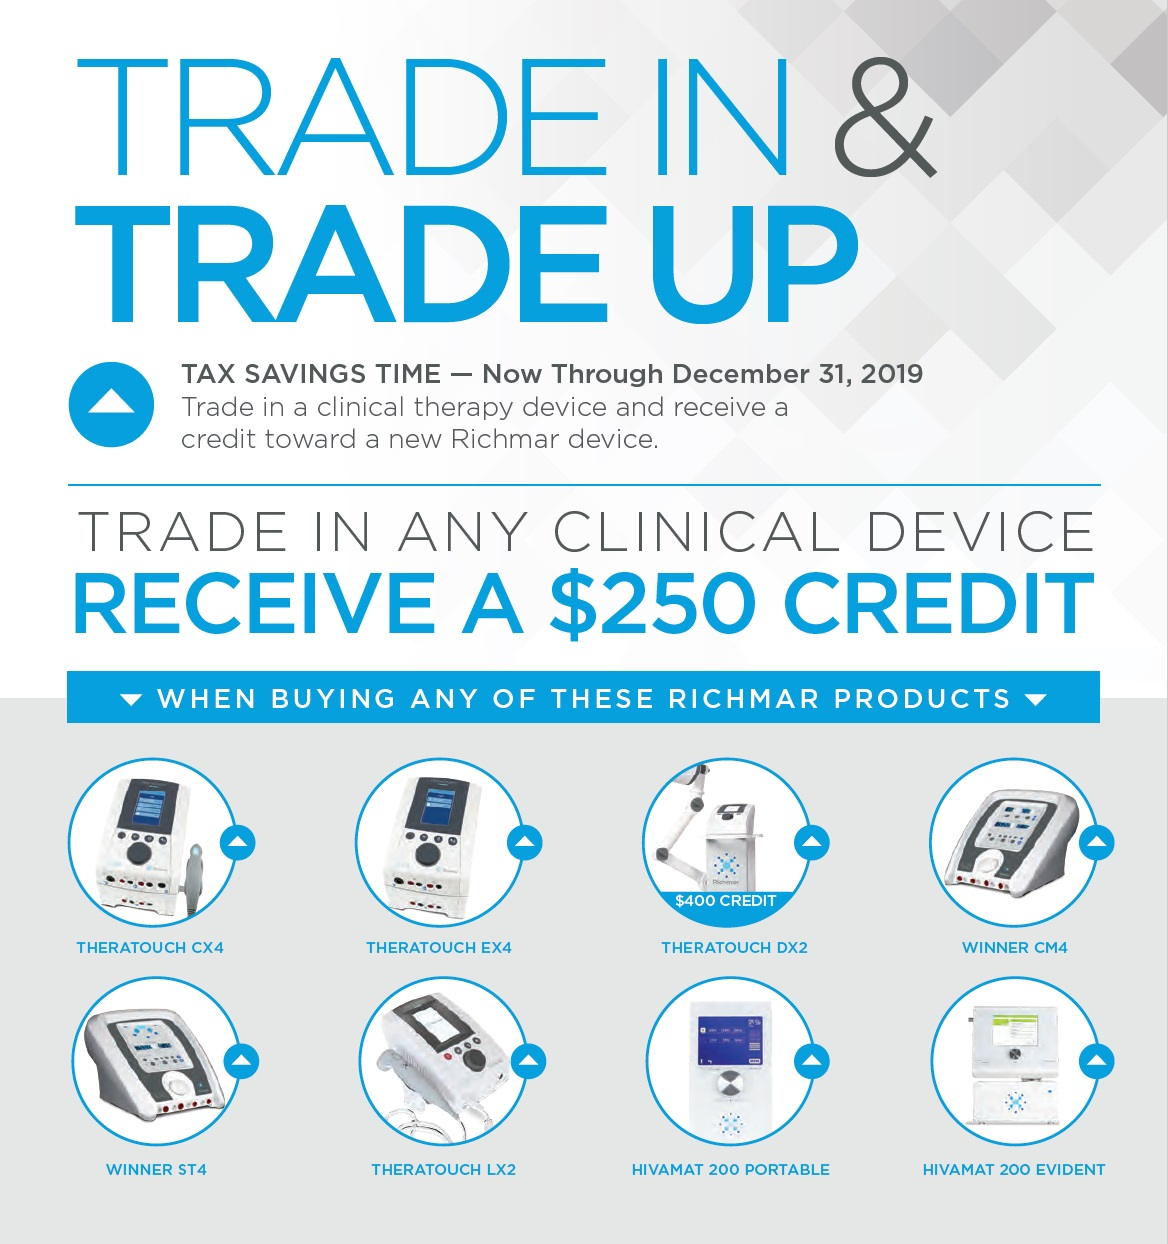 Richmar Trade-In Clinical Device Promo